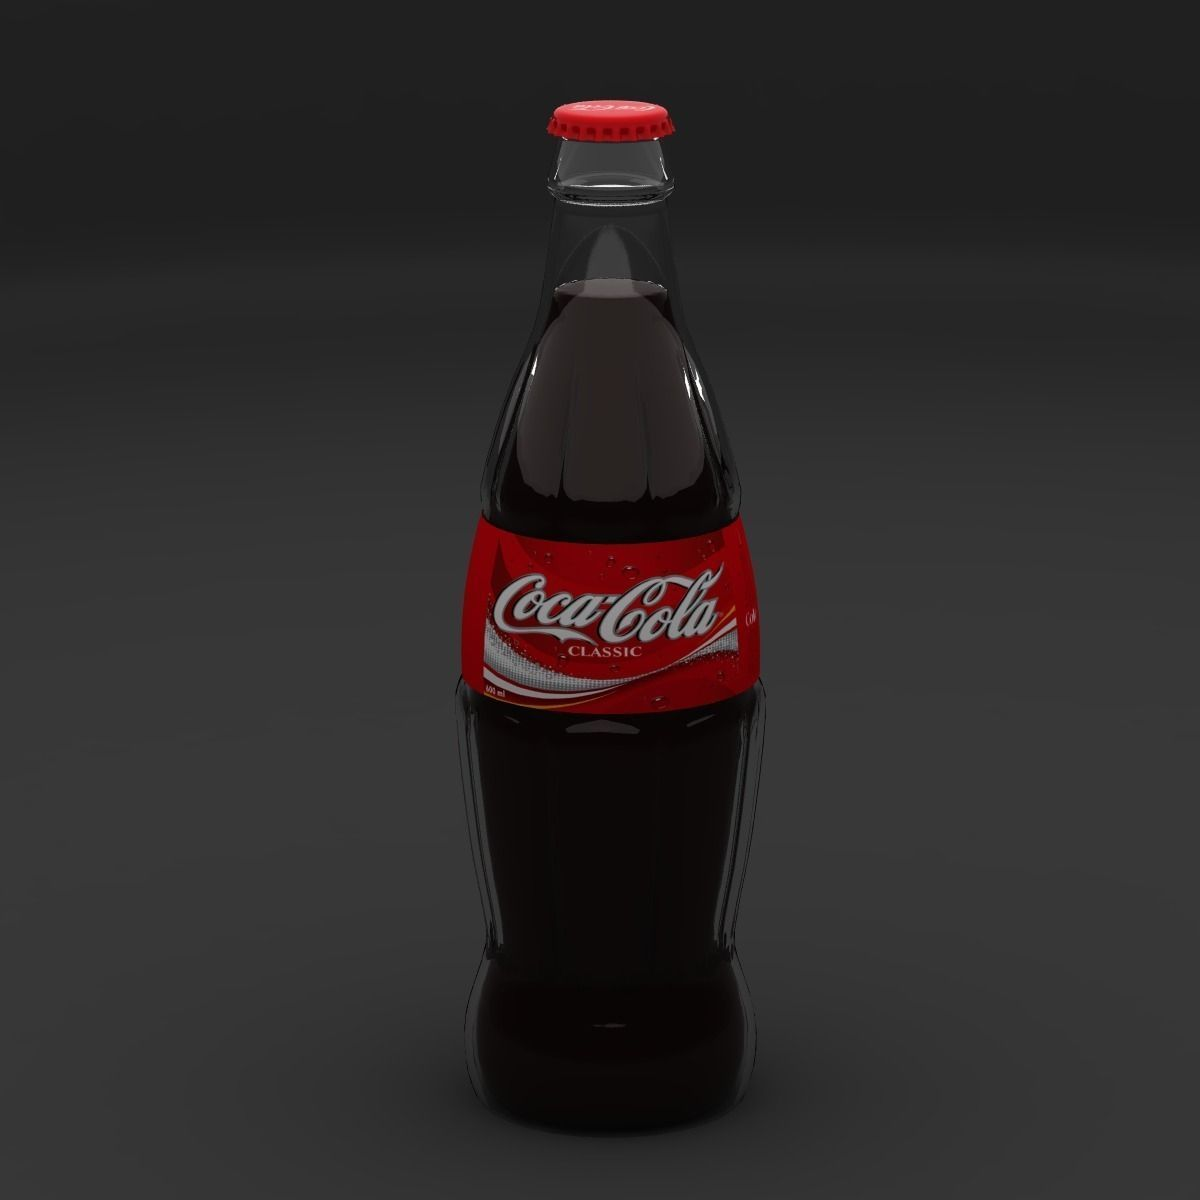 Coca Cola Bottle And Can 3d Model 3ds Max Files Free